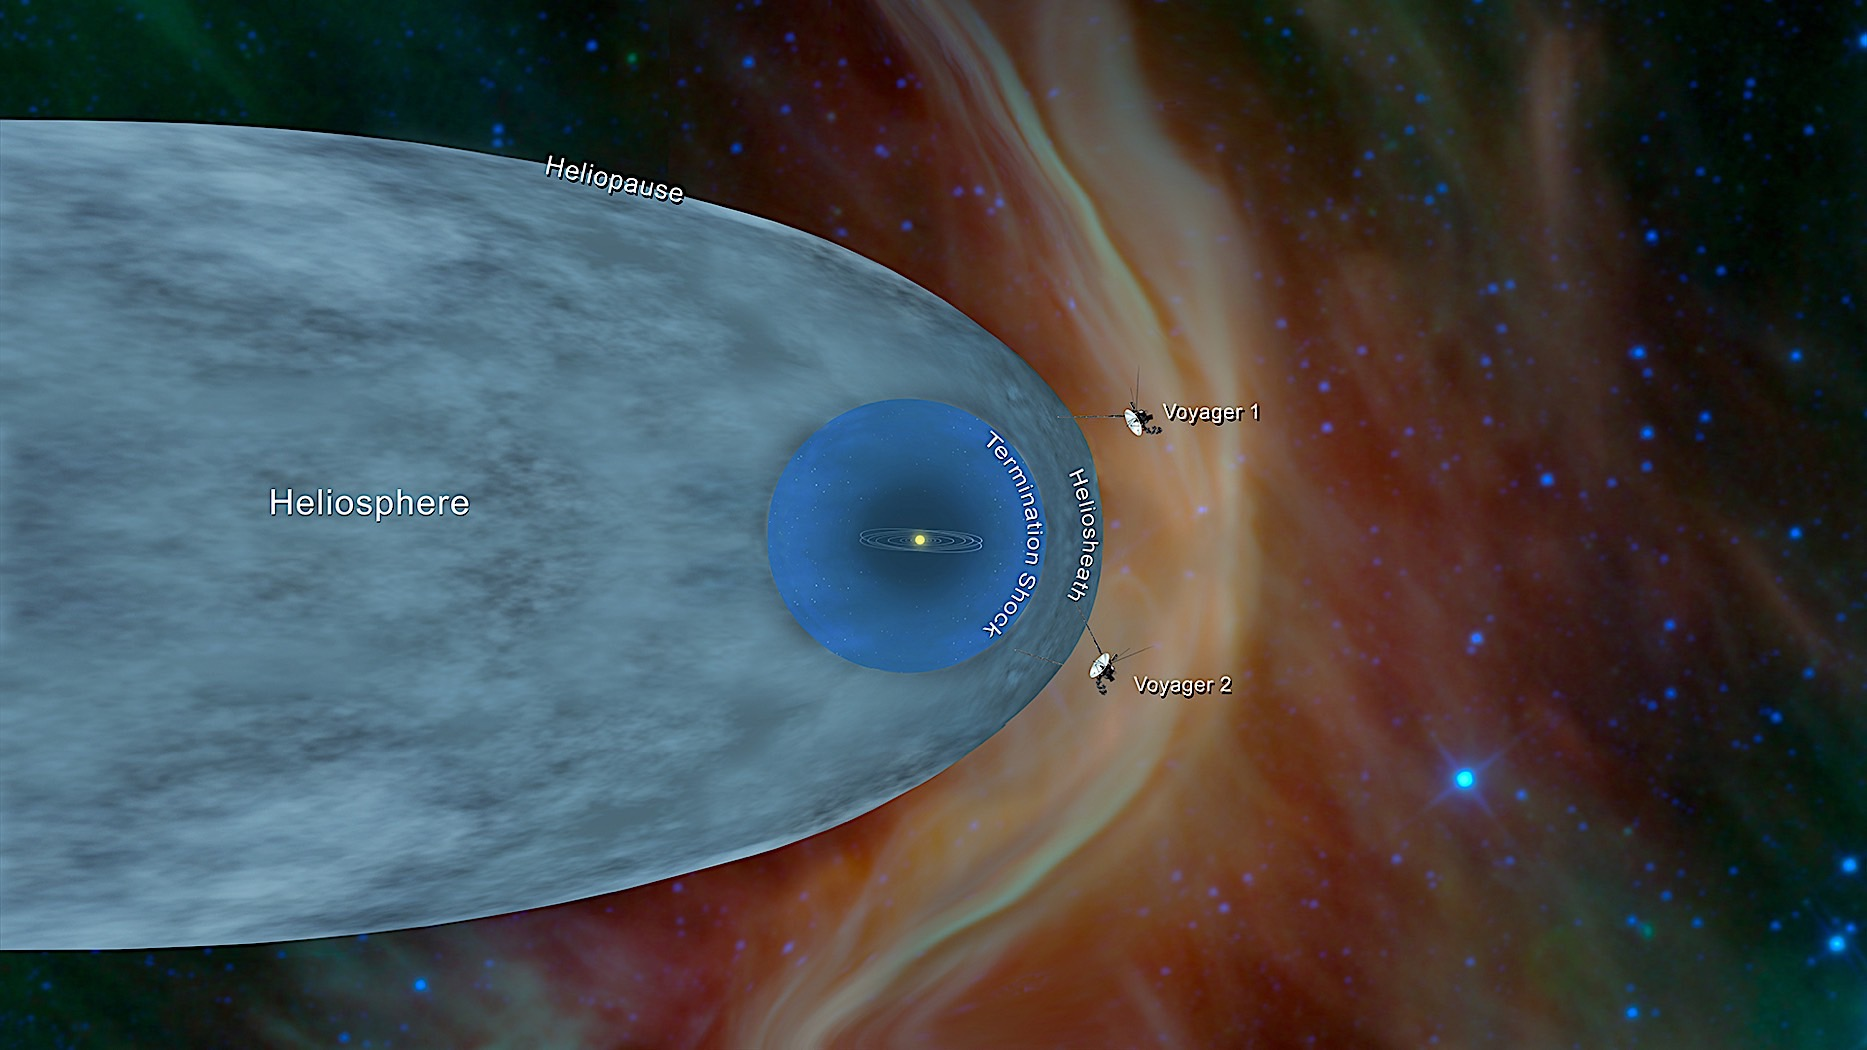 Voyager 2 probe moves into interstellar space